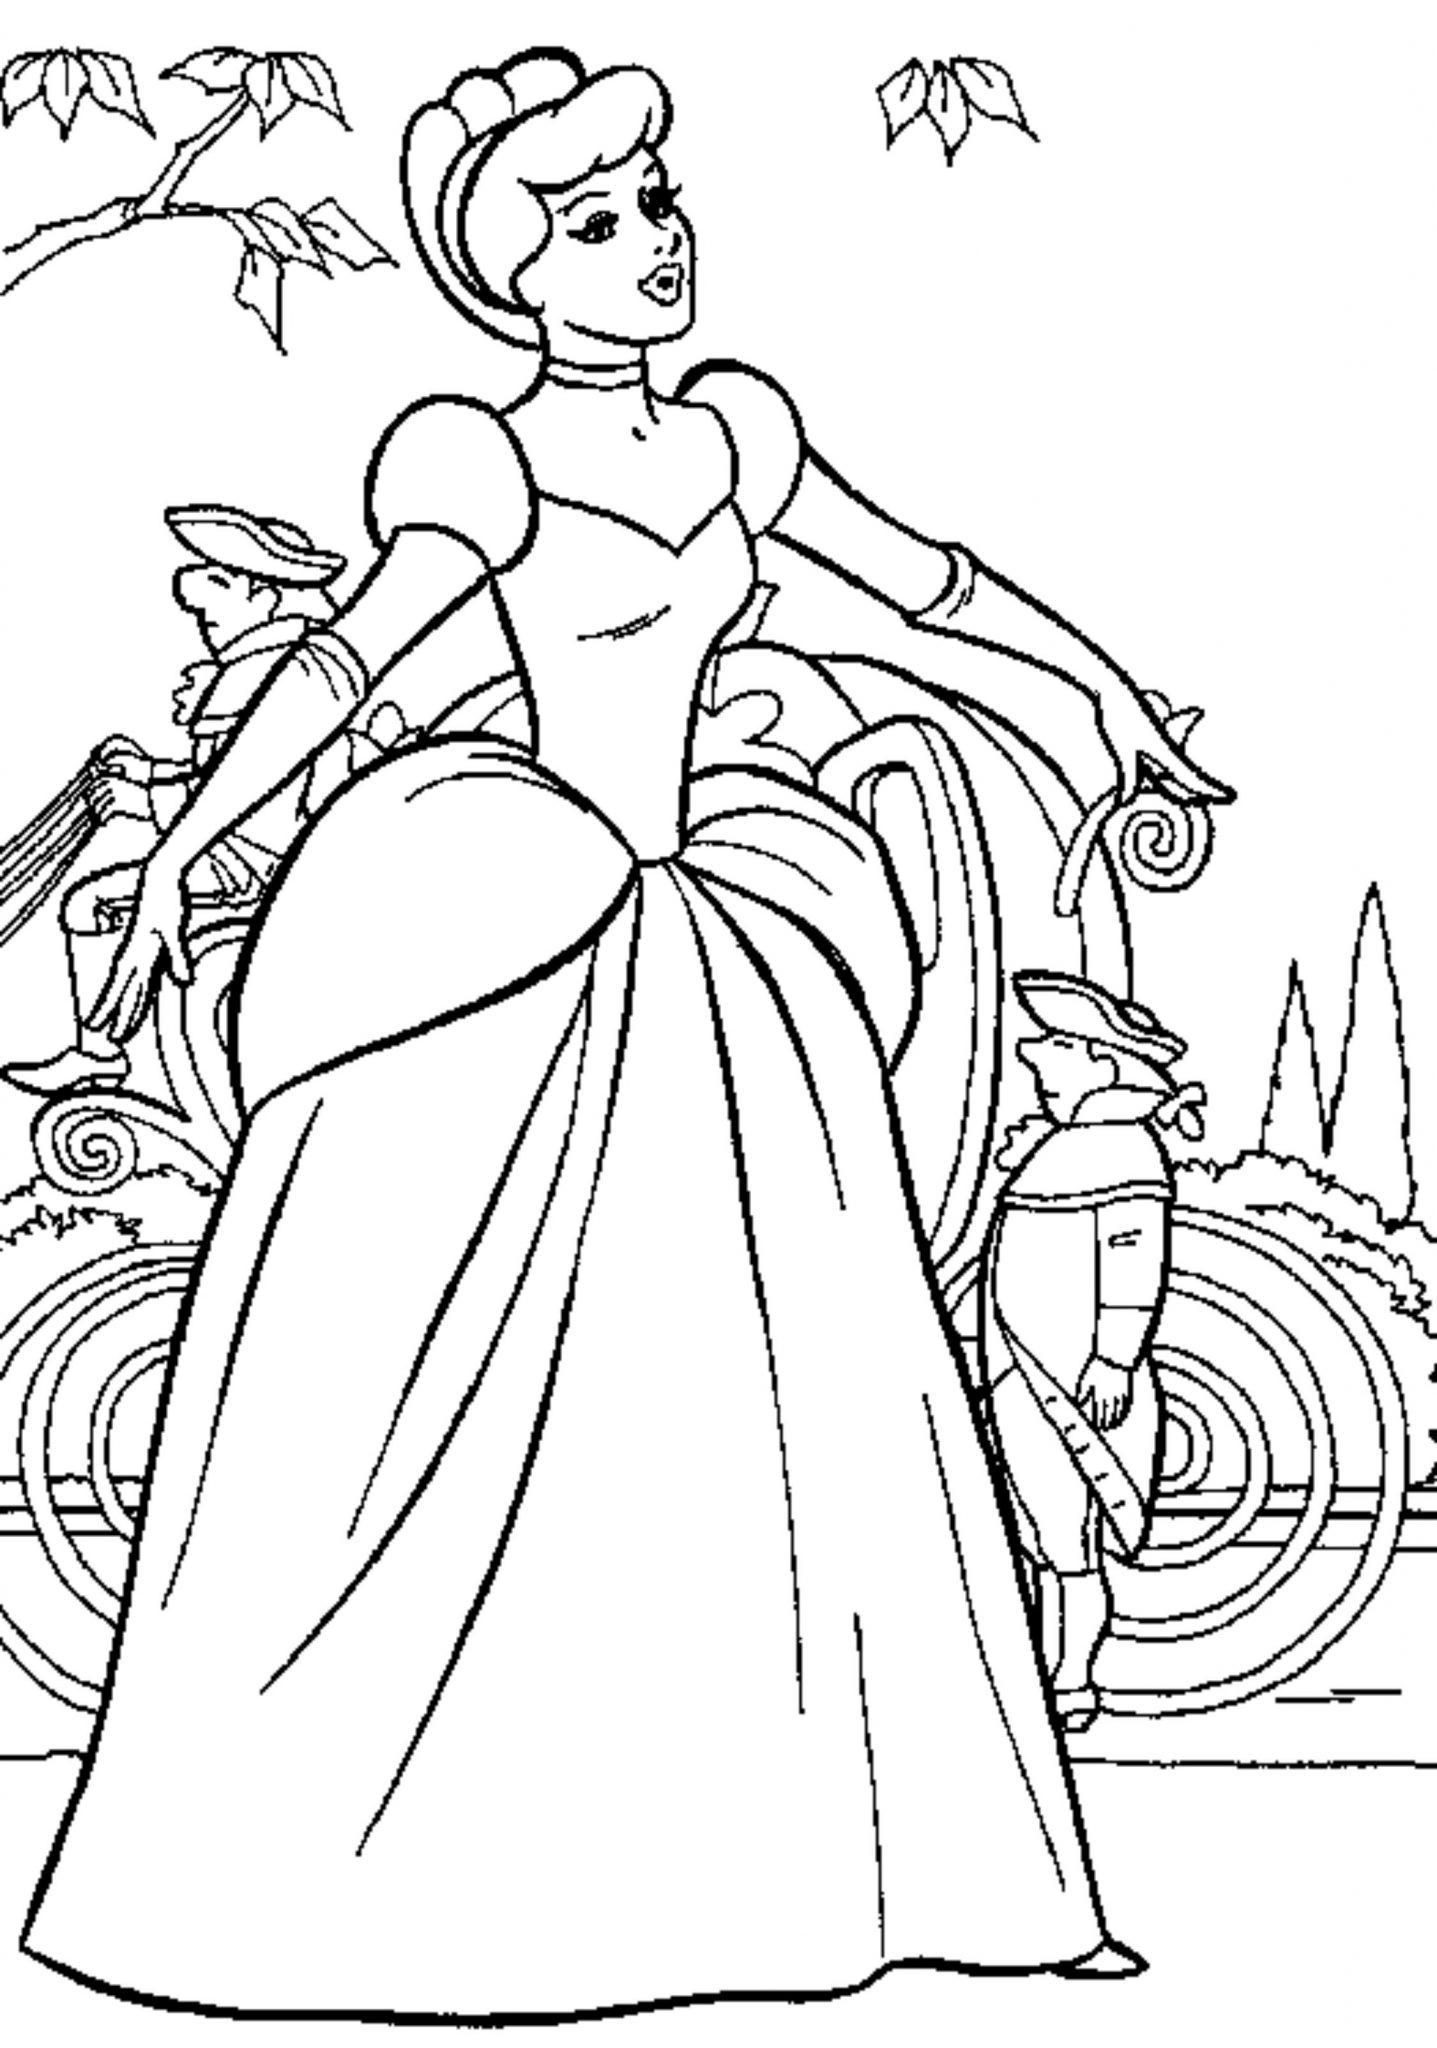 printable coloring pages of princesses print download princess coloring pages support the coloring pages printable princesses of